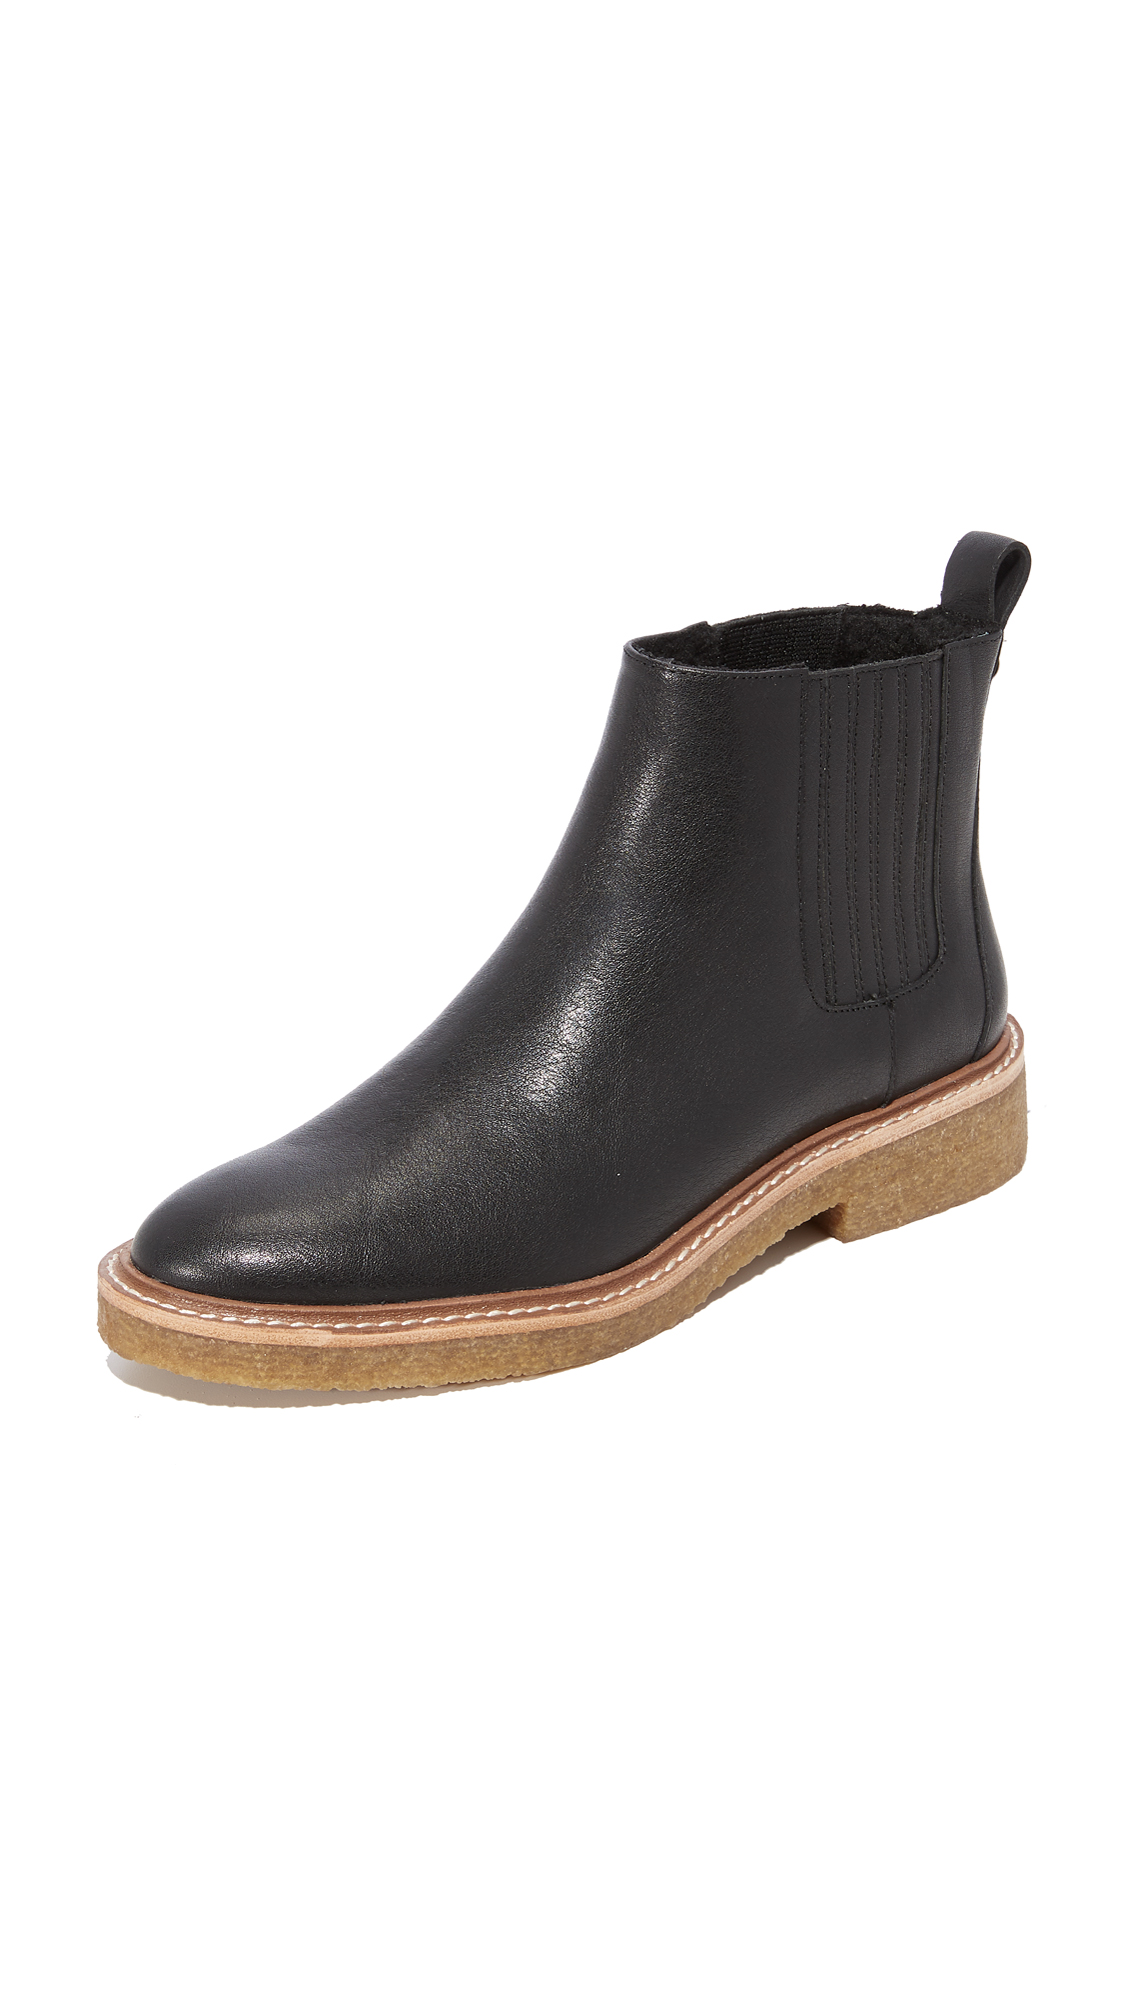 Botkier Chelsea Booties - Black